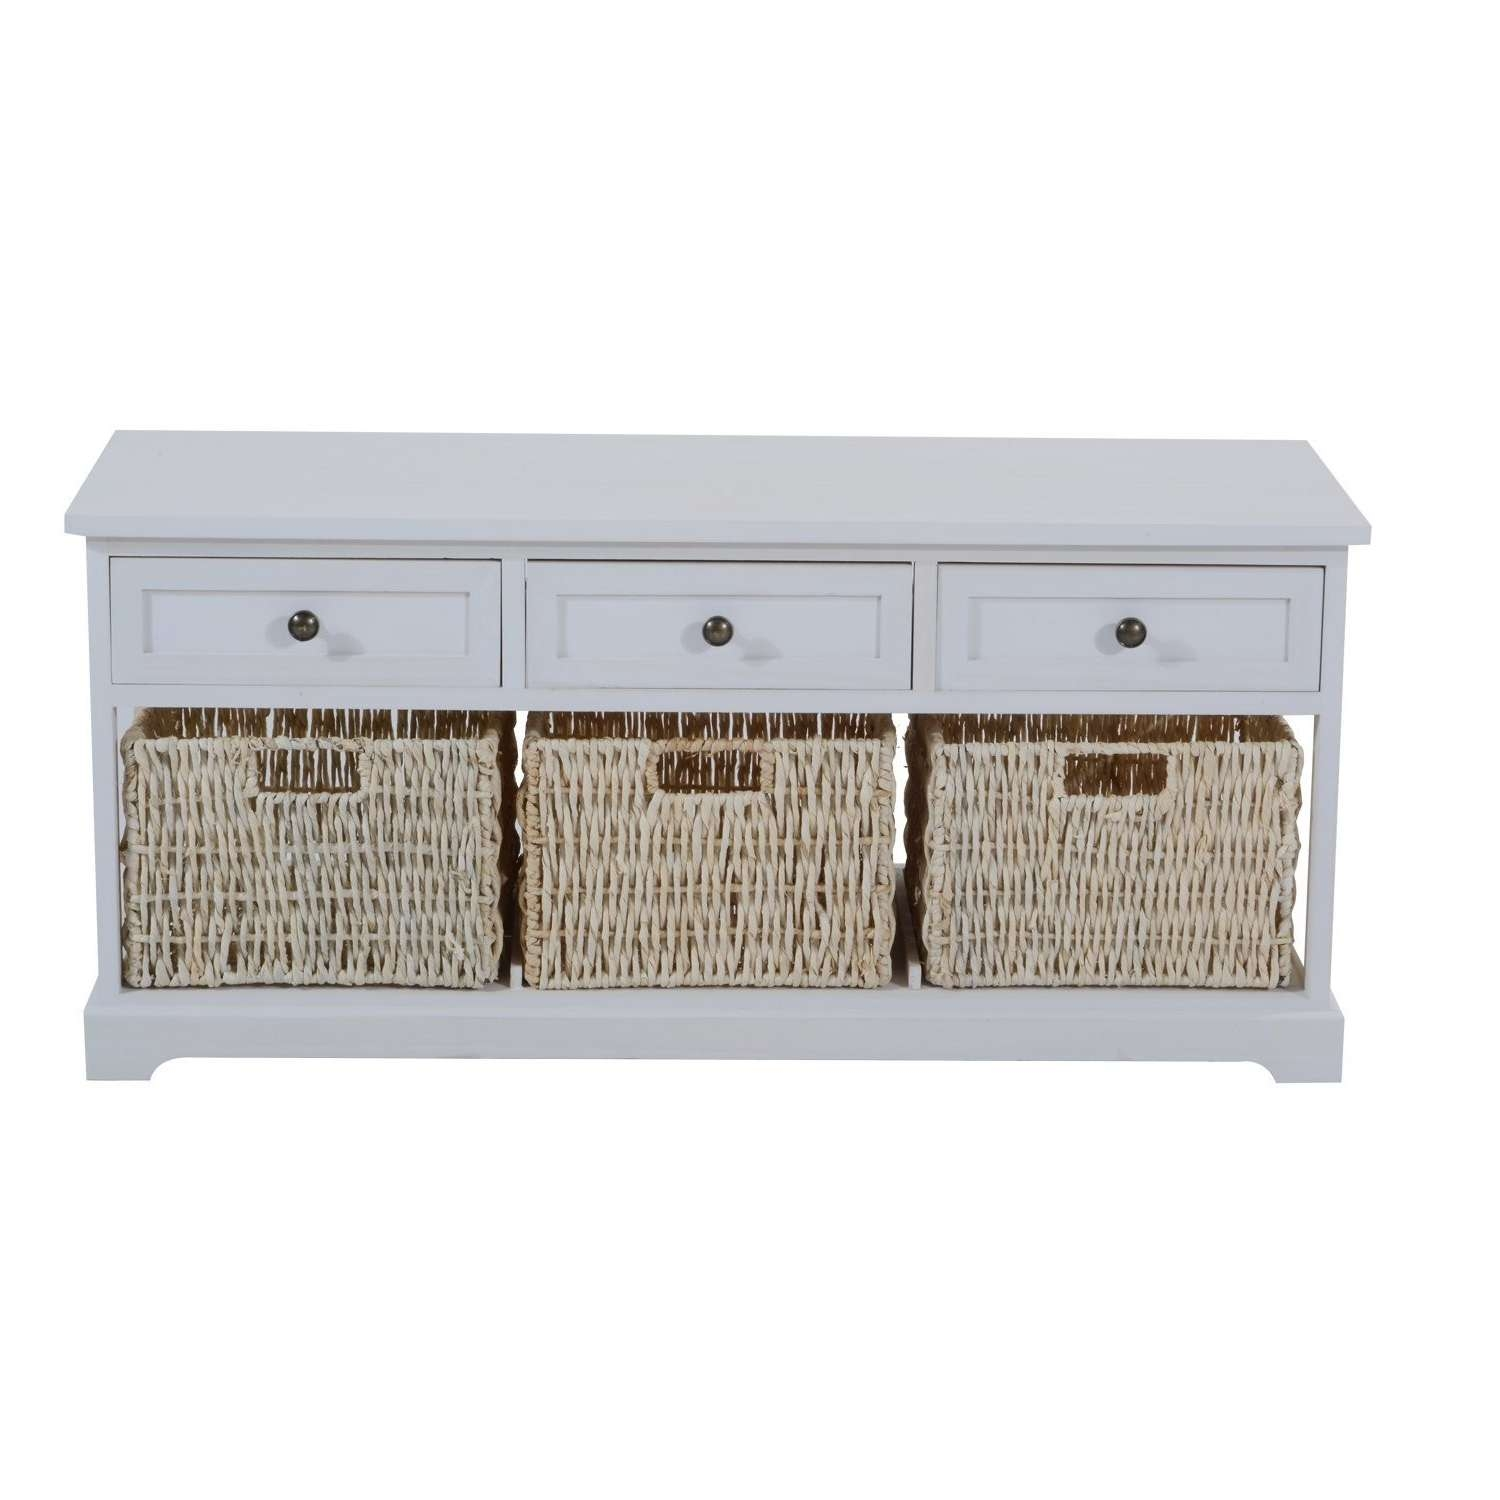 Wooden Coffee Table With Seagrass Wicker Storage Baskets – Ideal With Most Recently Released Coffee Table With Wicker Basket Storage (View 20 of 20)